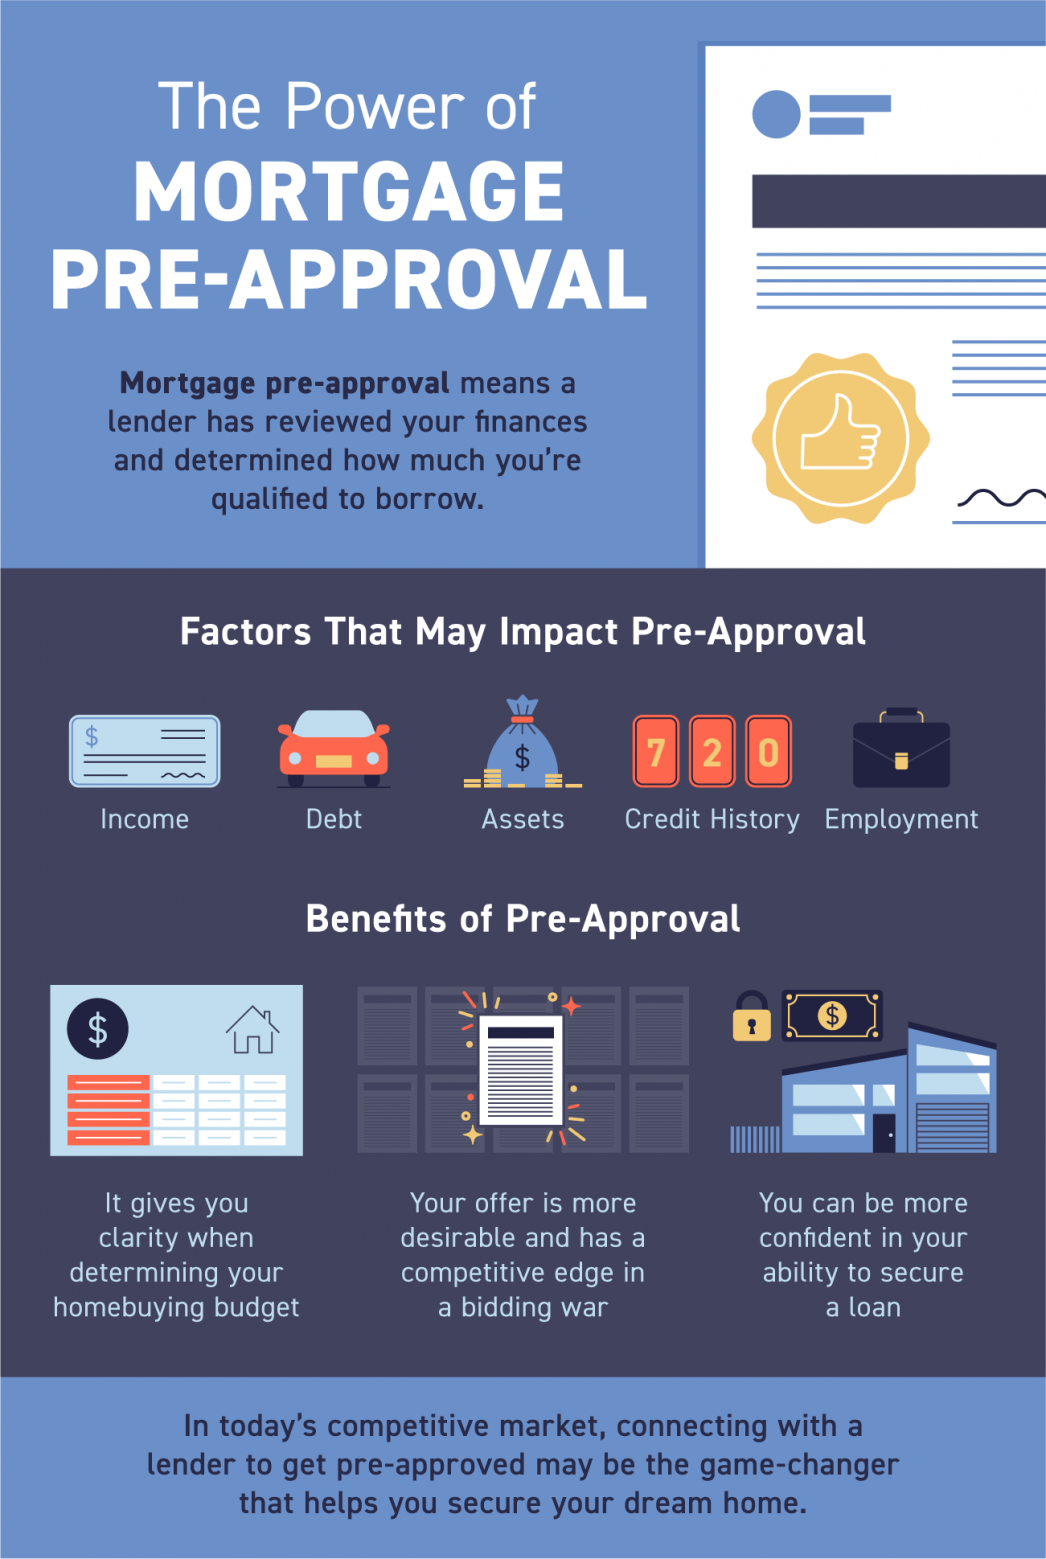 The Power of Mortgage Pre-Approval [INFOGRAPHIC] | MyKCM